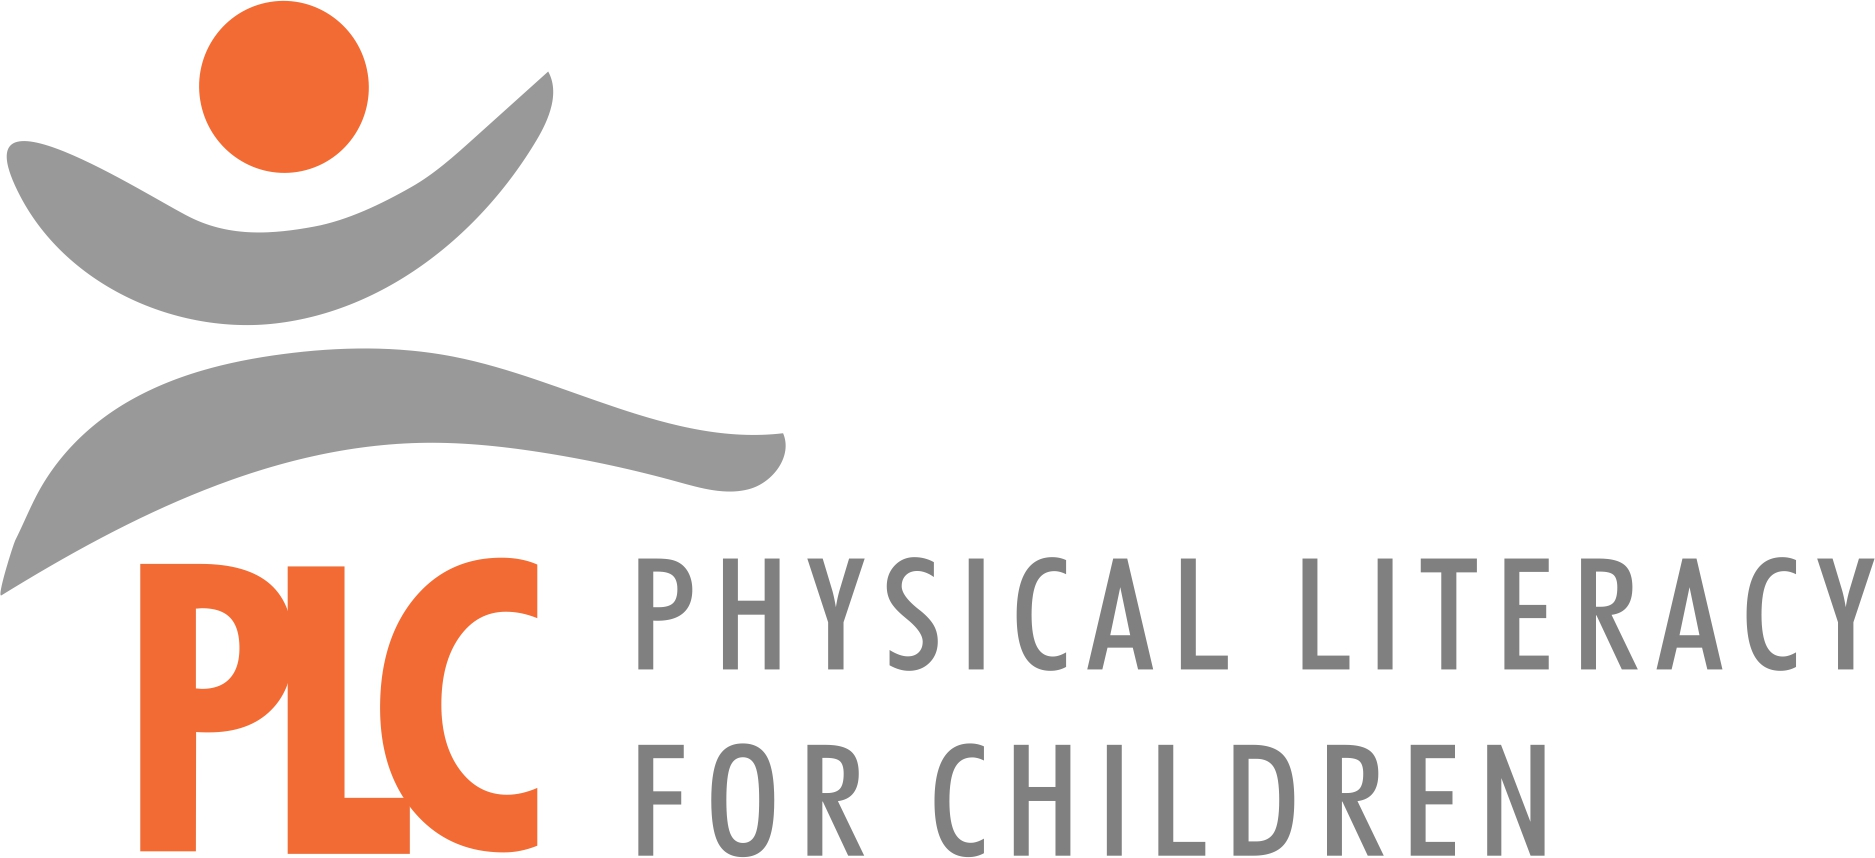 Physical Literacy for Children PLC